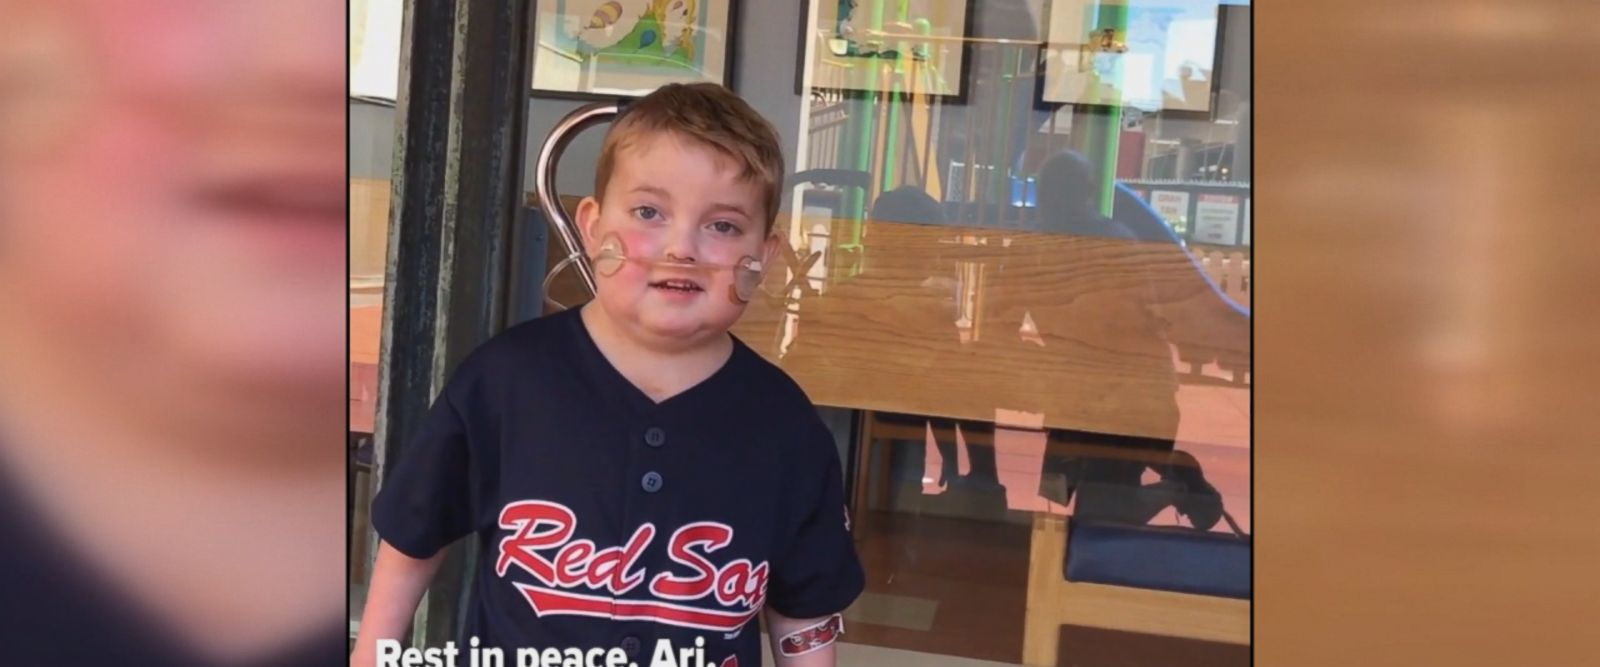 Ari Schultz, the 5-year-old heart-transplant recipient who wow'd people with his positive attitude and joyful exuberance, has died.